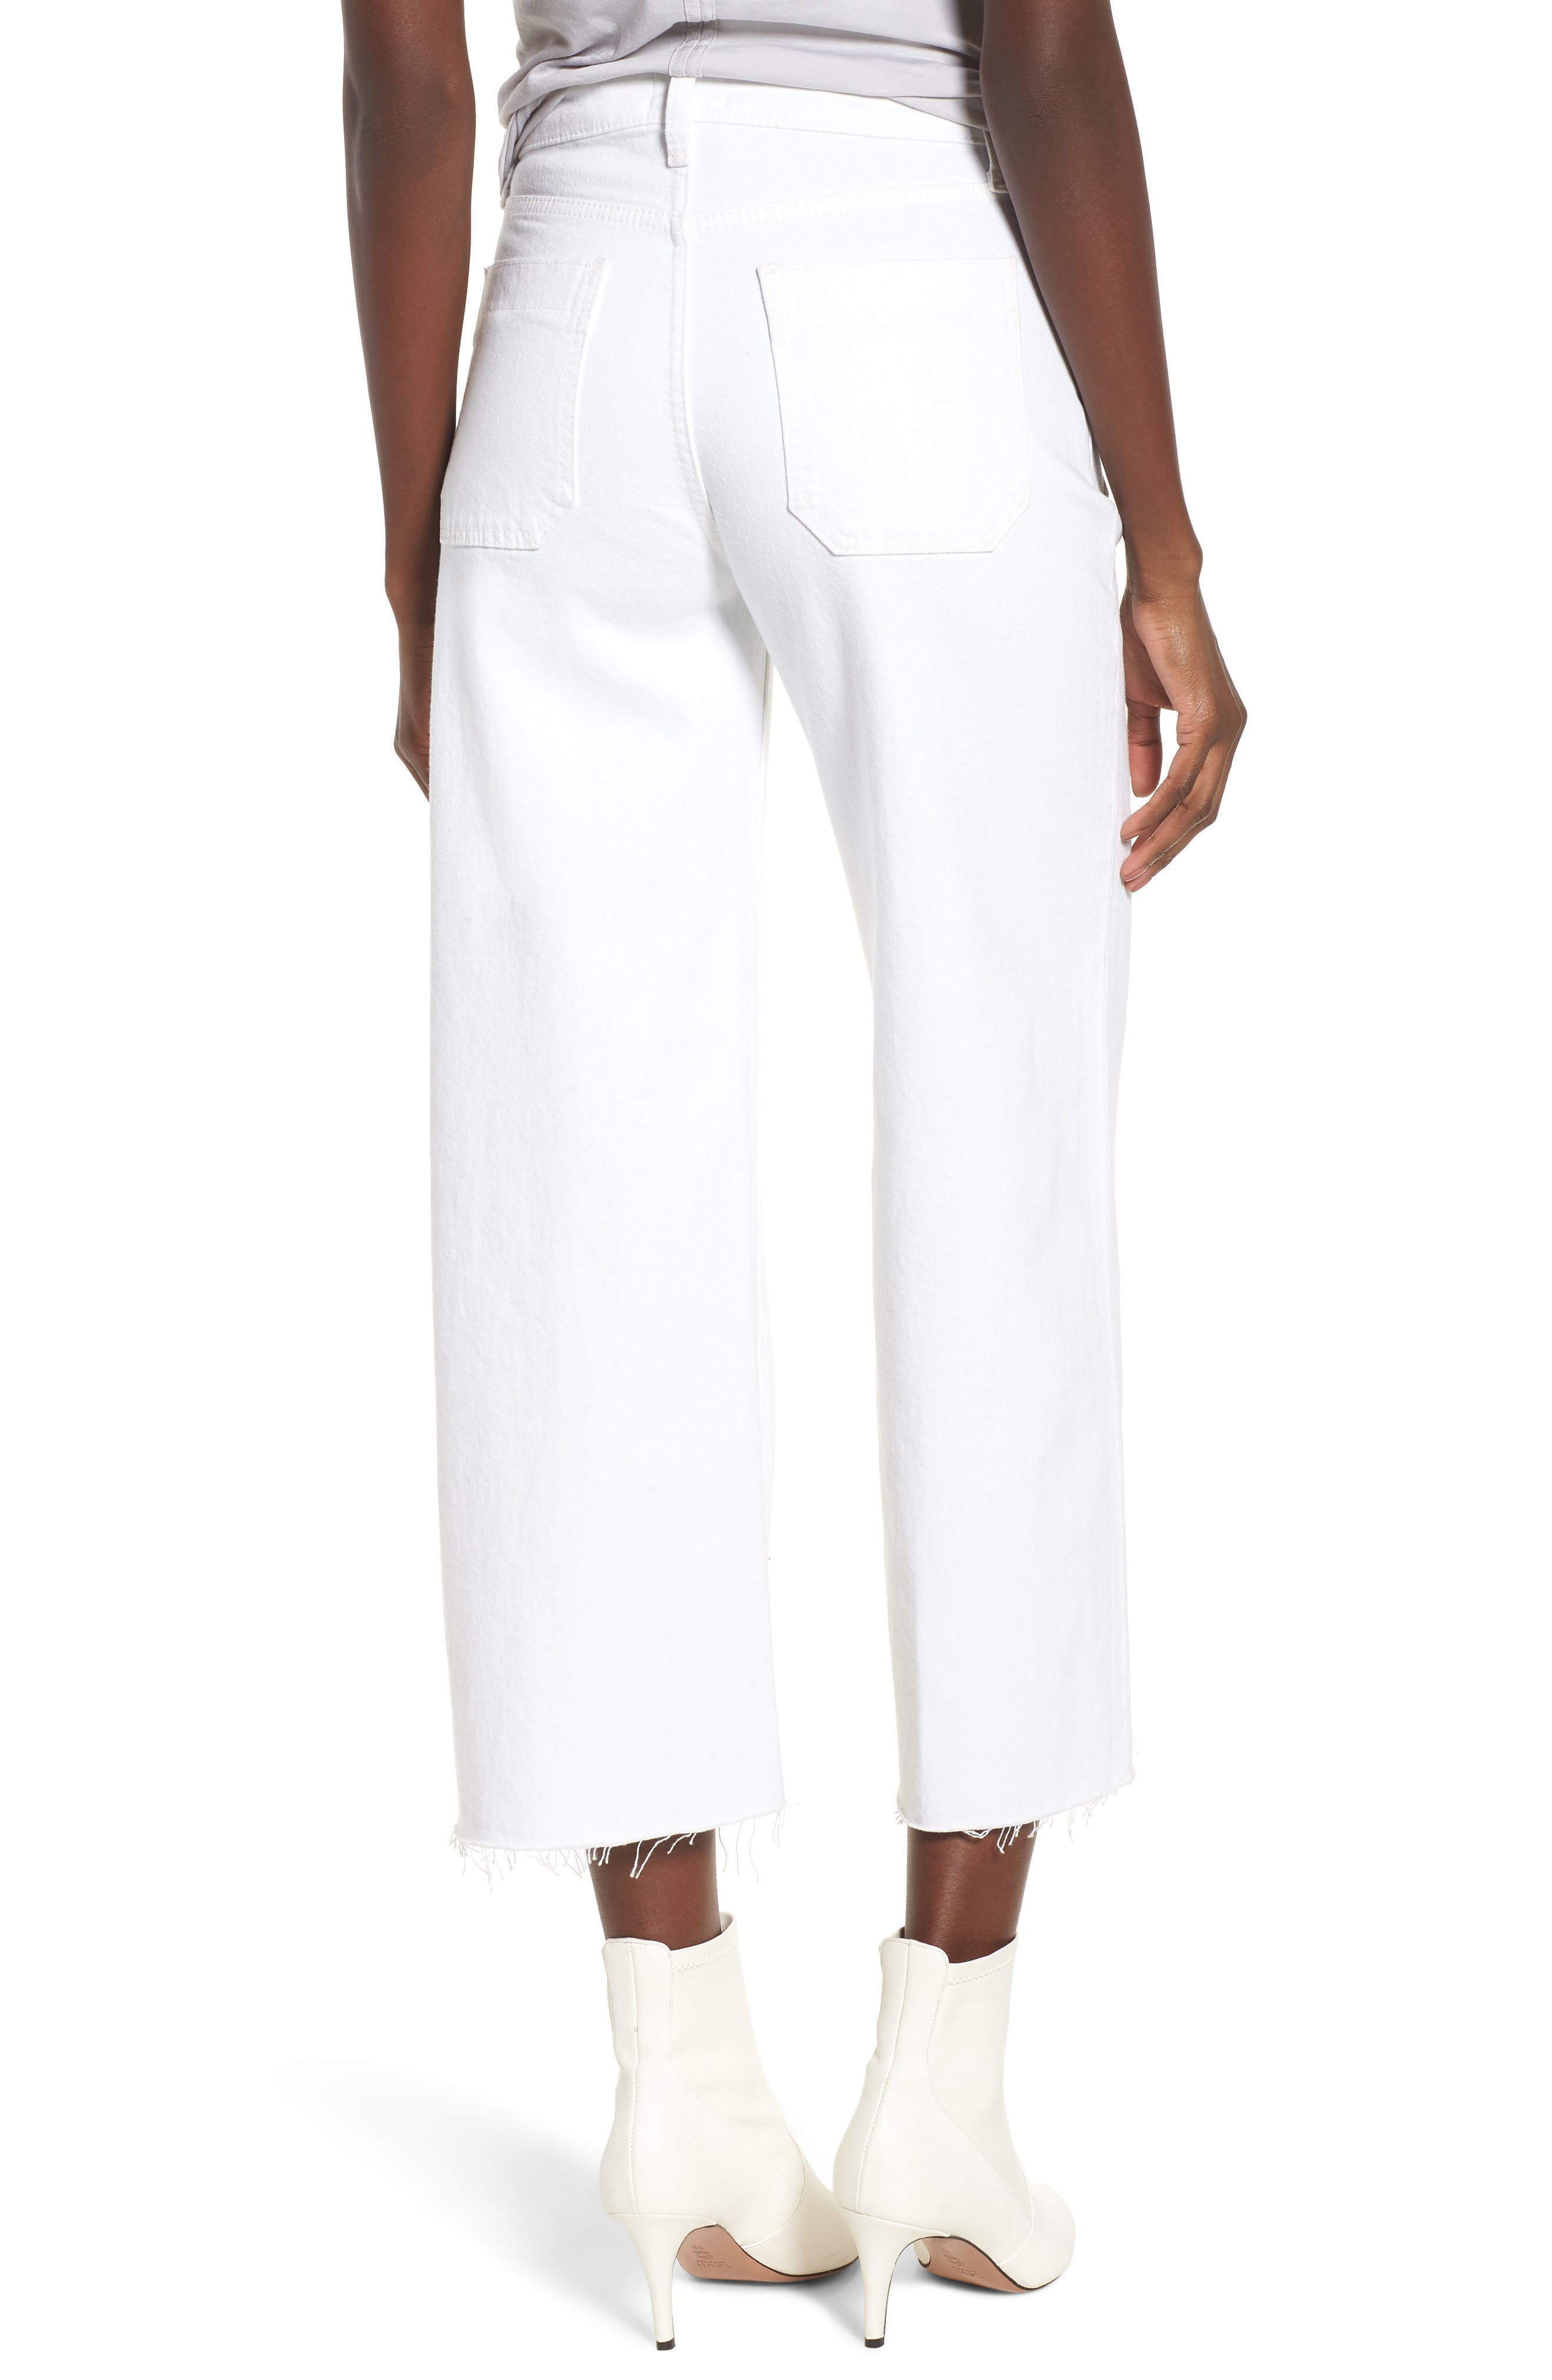 Holly High Waist Raw Hem Crop Wide Leg Jeans,                             Alternate thumbnail 2, color,                             White